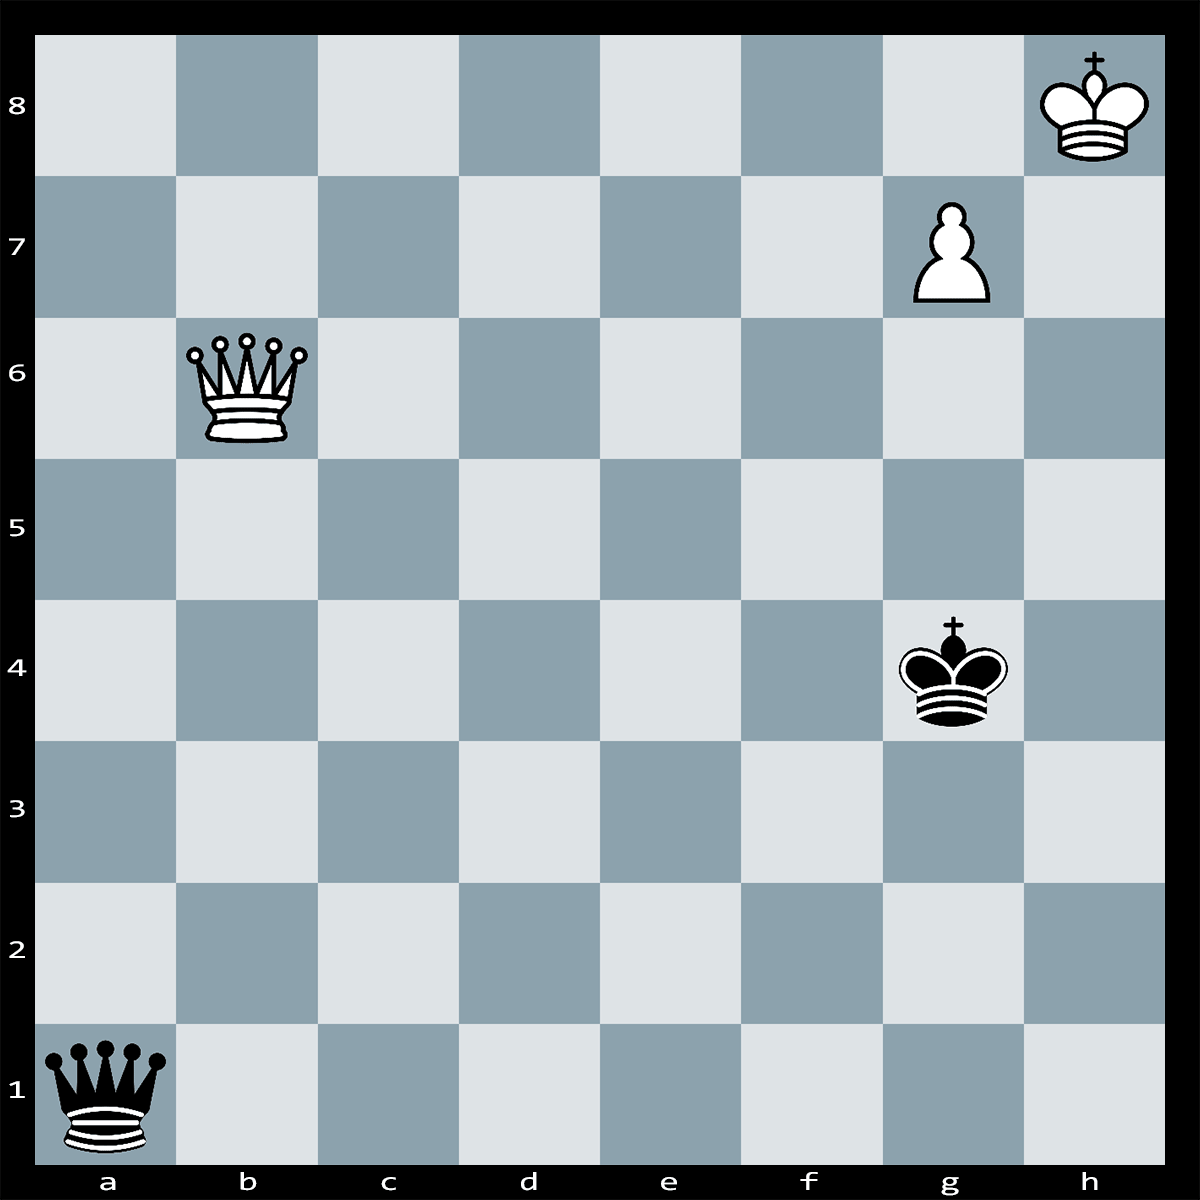 White to Play and Win, Find the Best Move | Chess Puzzle #197